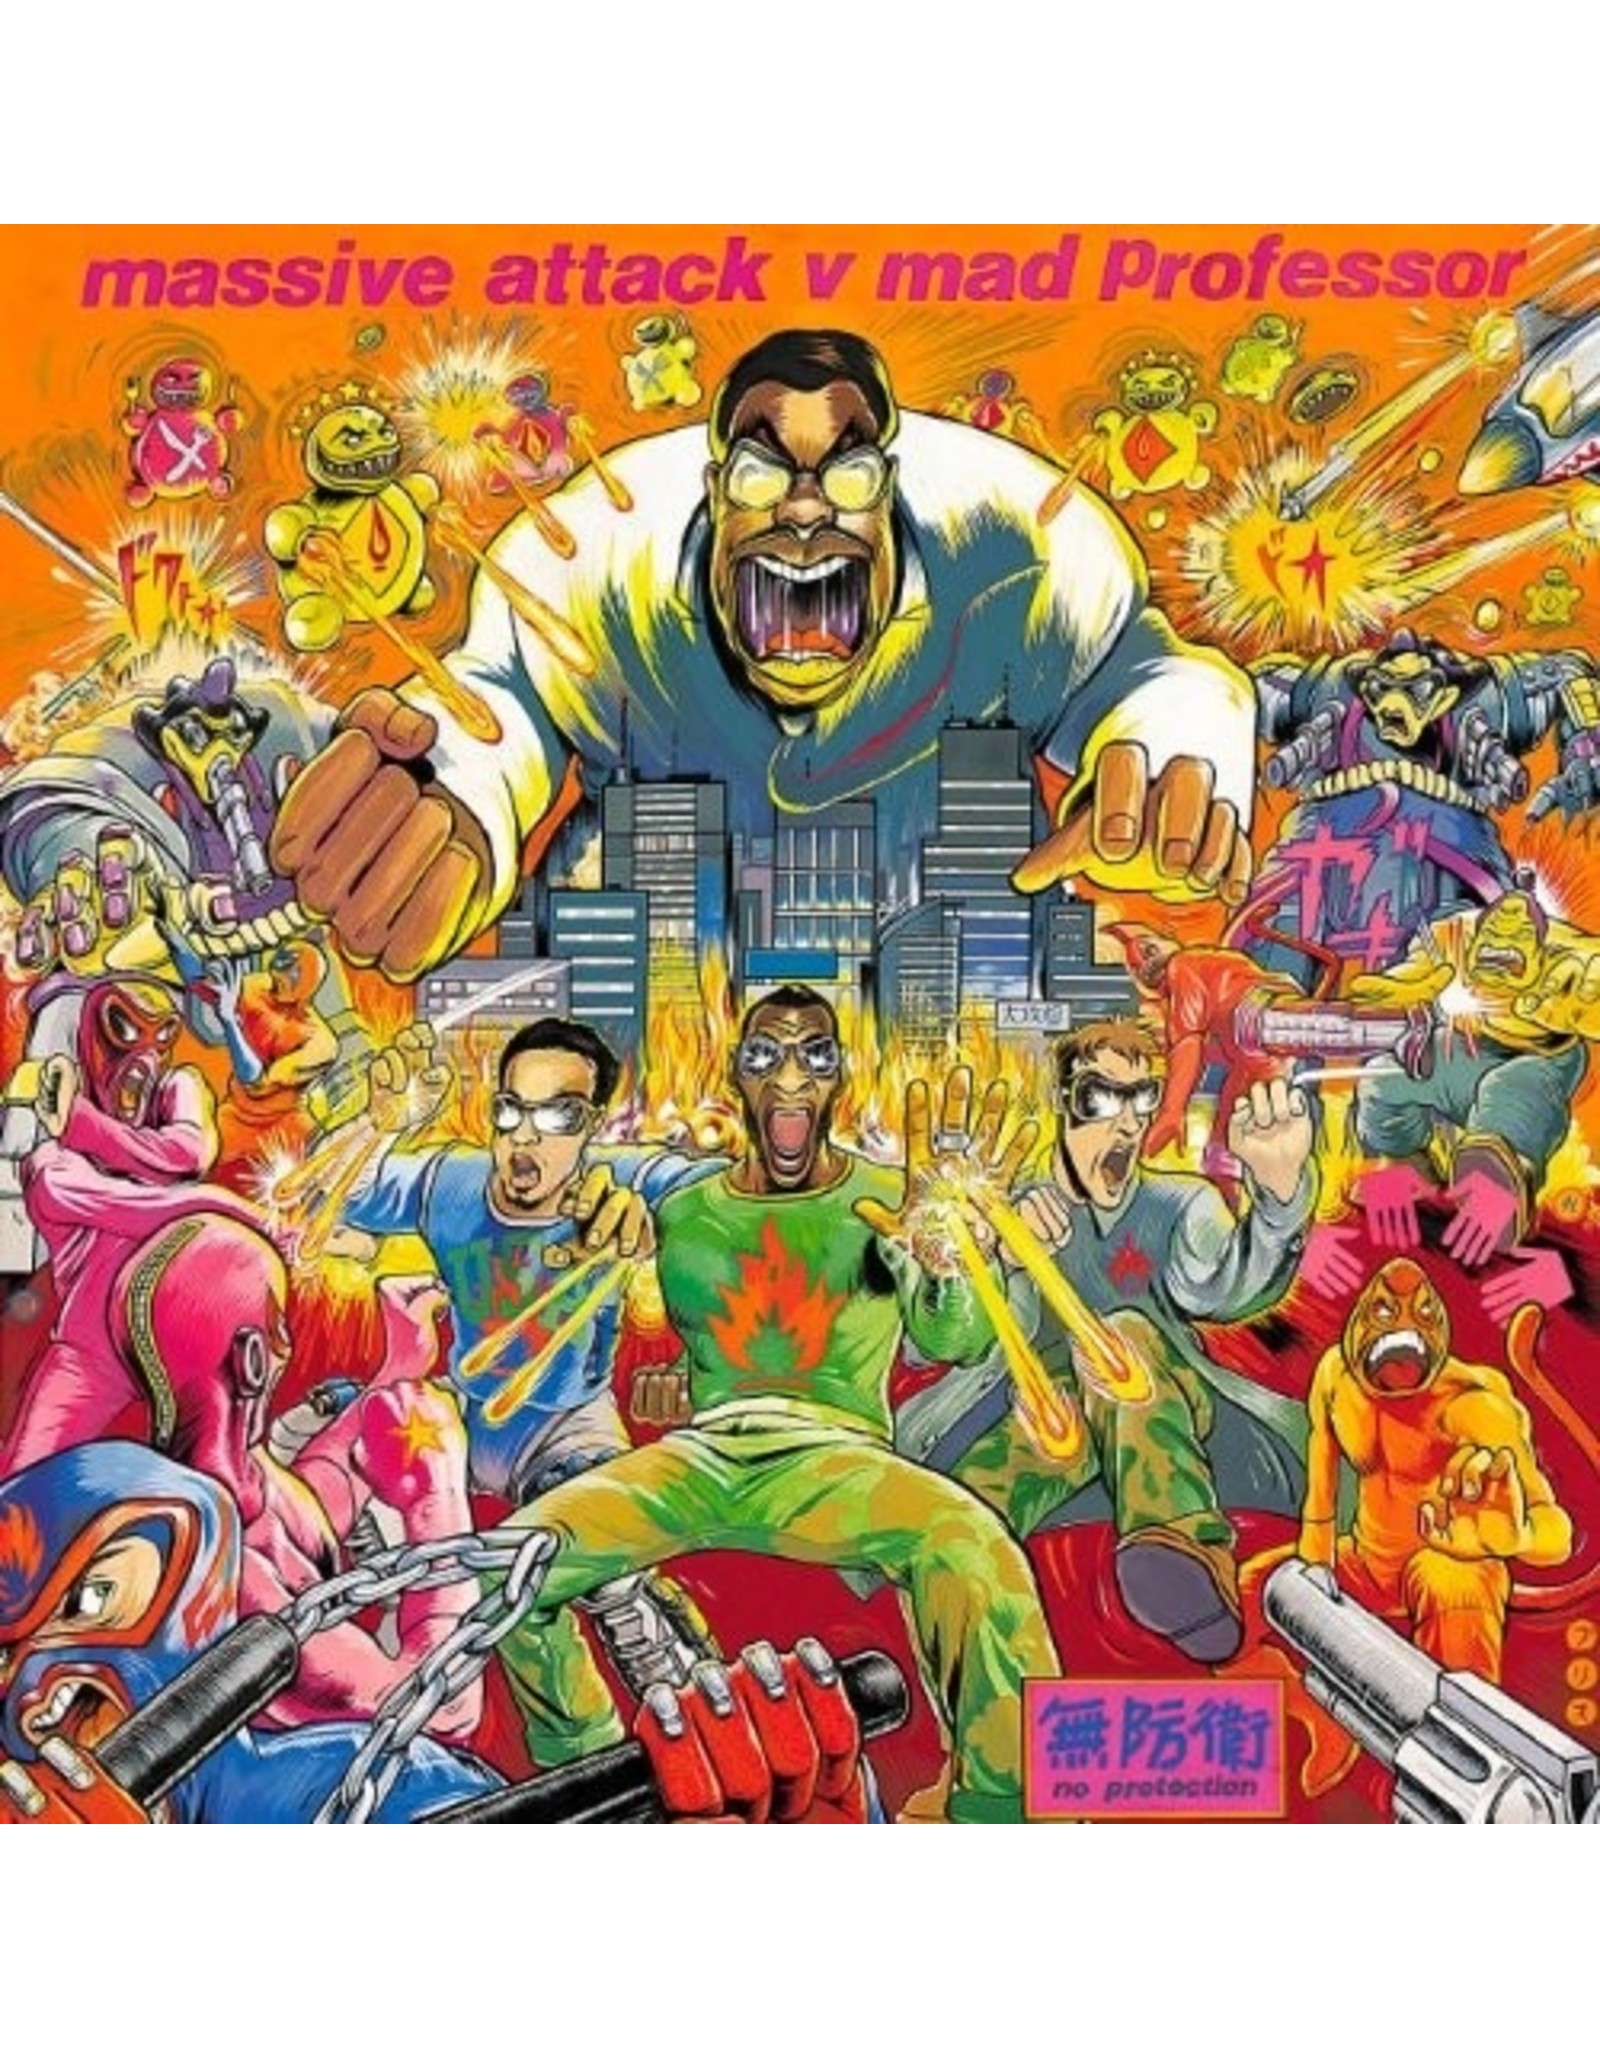 New Vinyl Massive Attack Vs. Mad Professor - No Protection LP